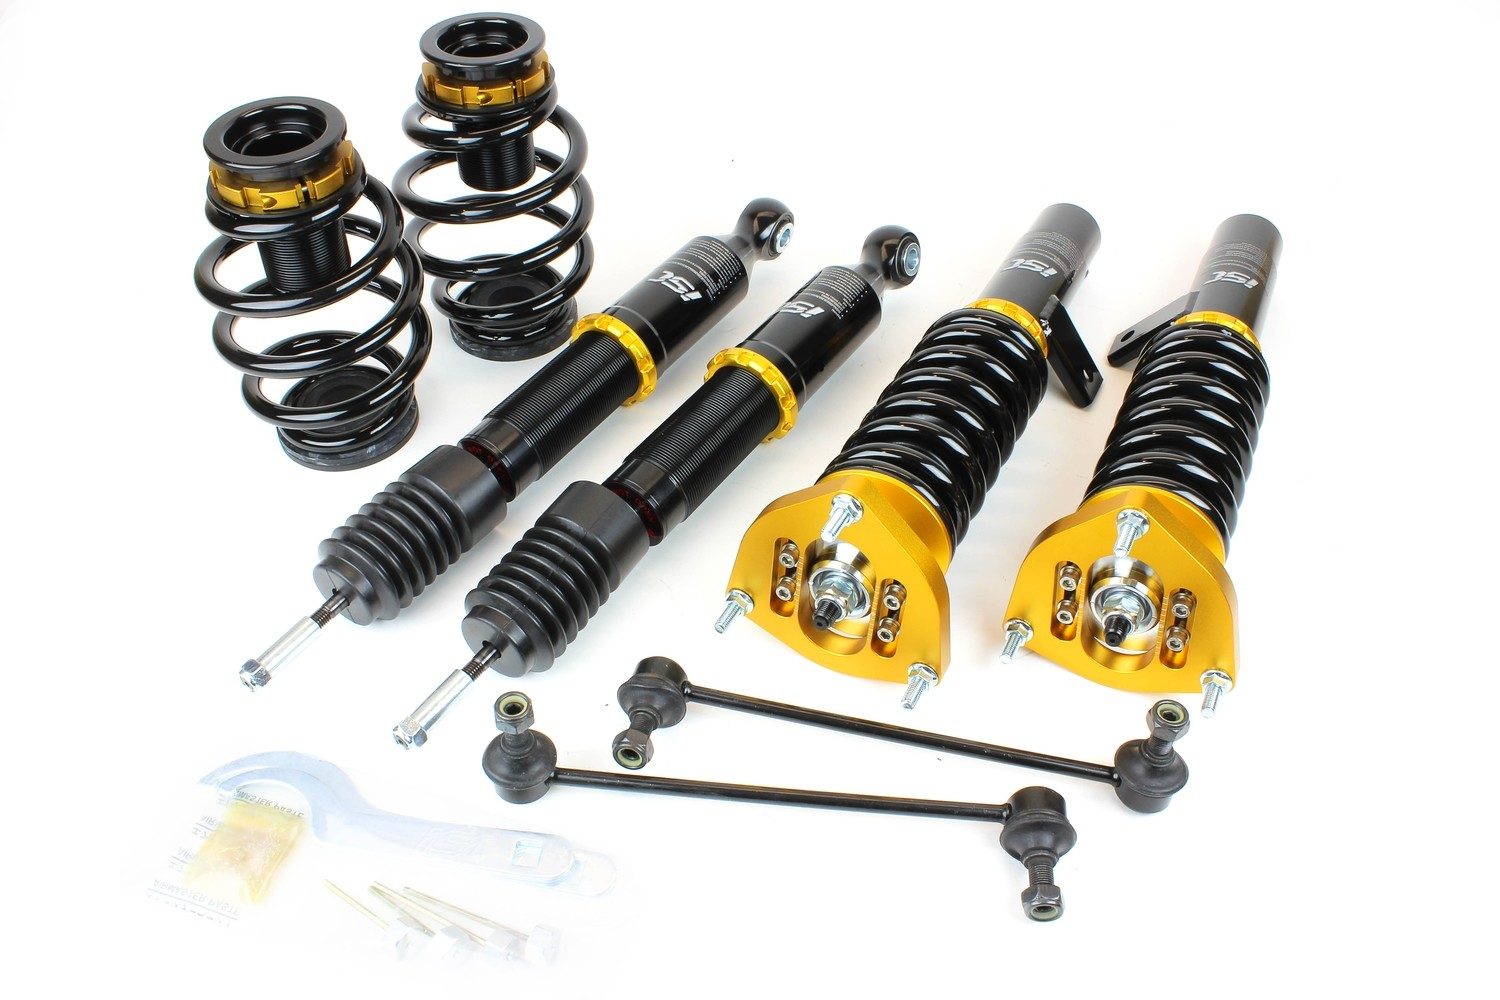 Volkswagen Golf Mk6 2WD (10-12) ISC N1 Coilover Suspension